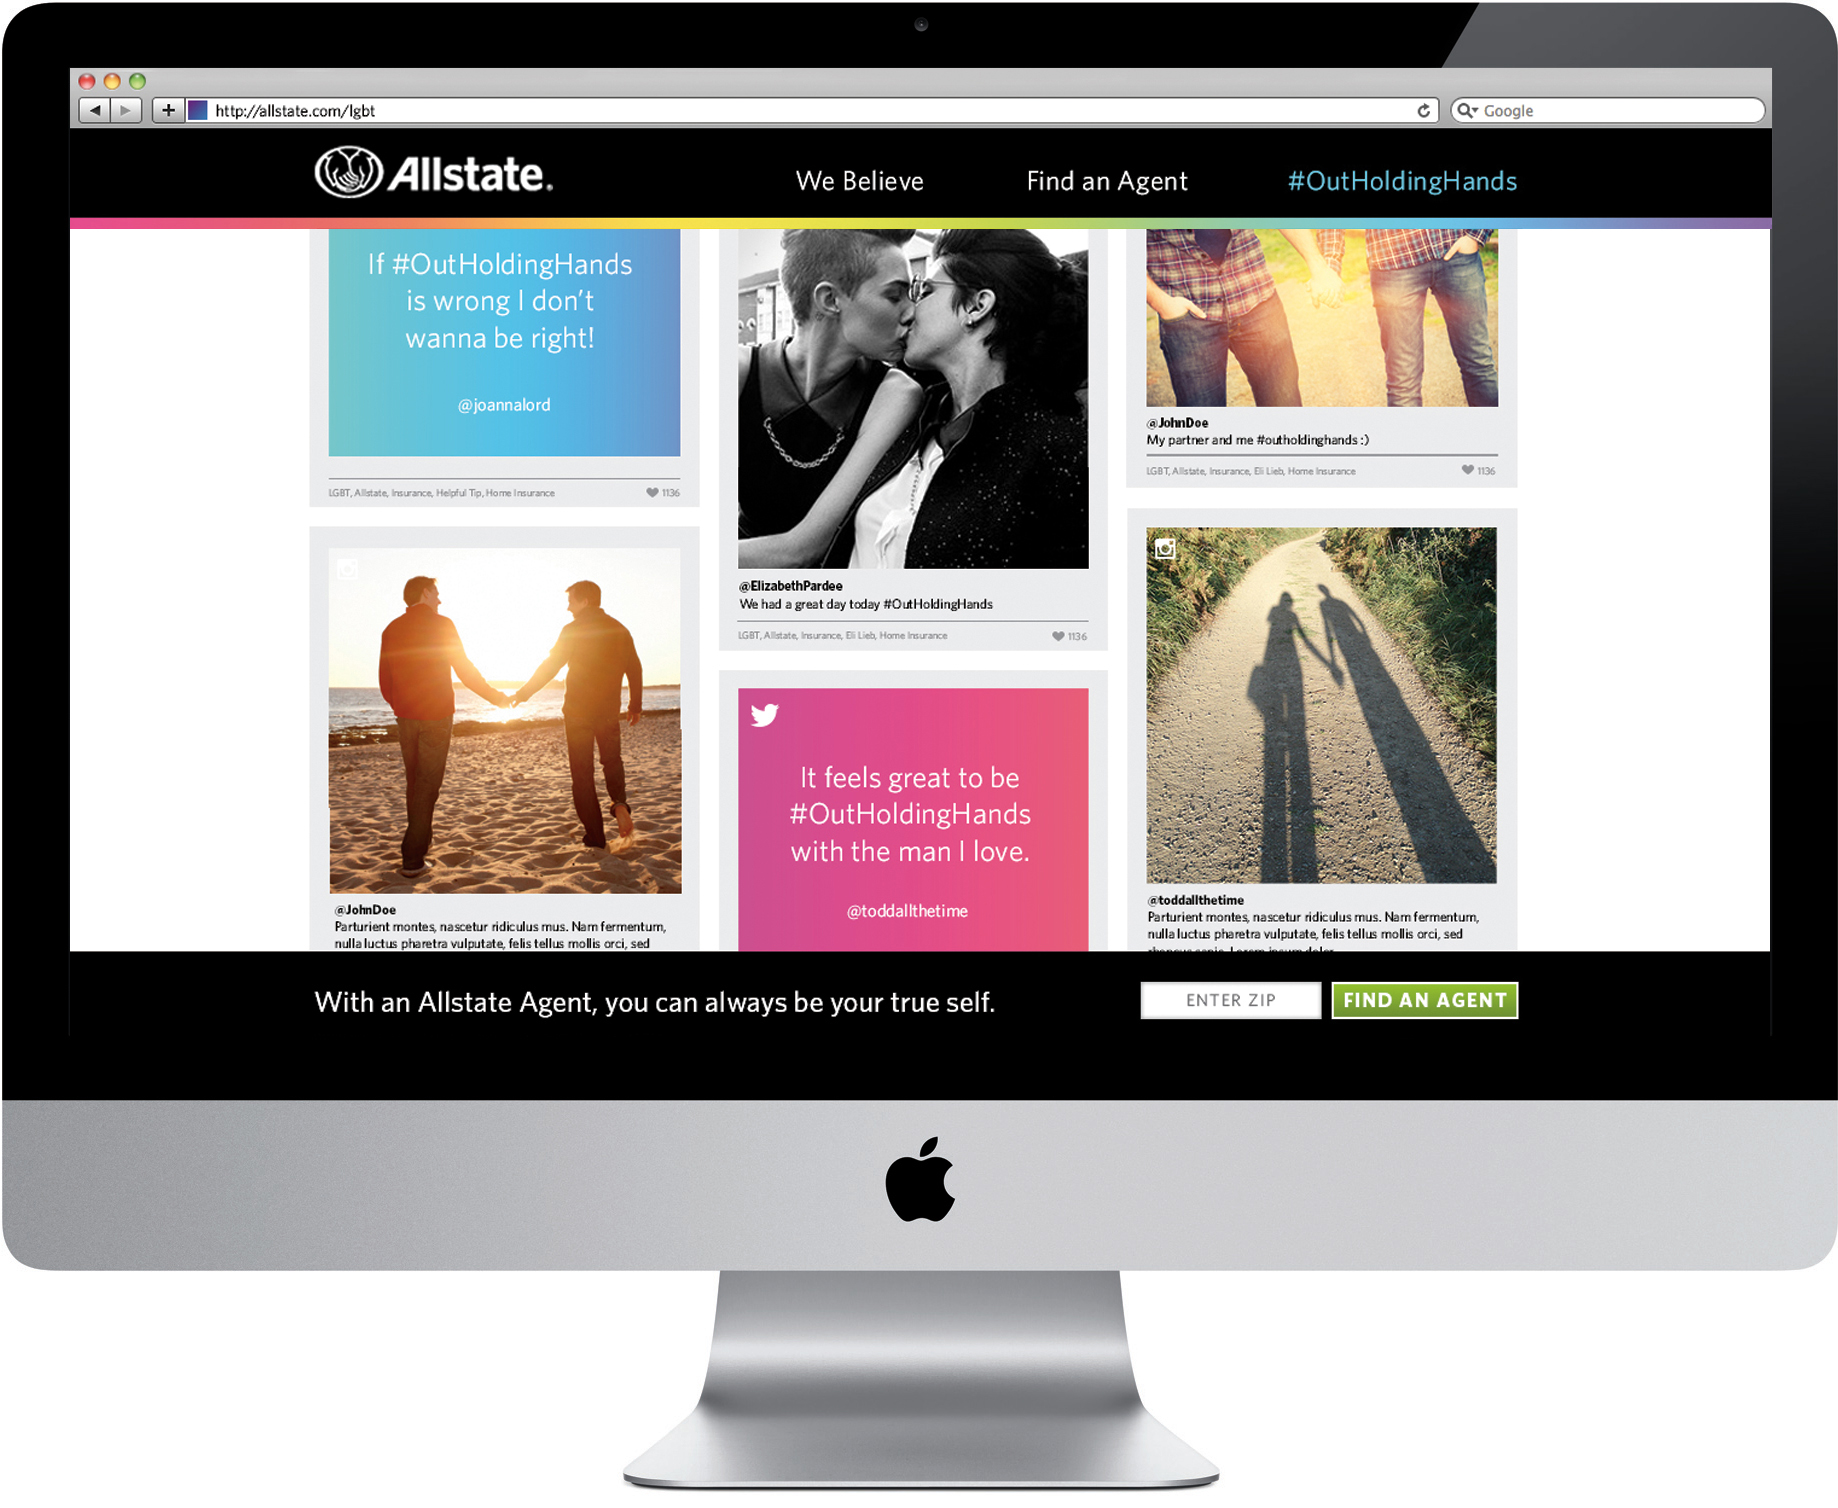 Allstate-LGBT-Website-6.jpg